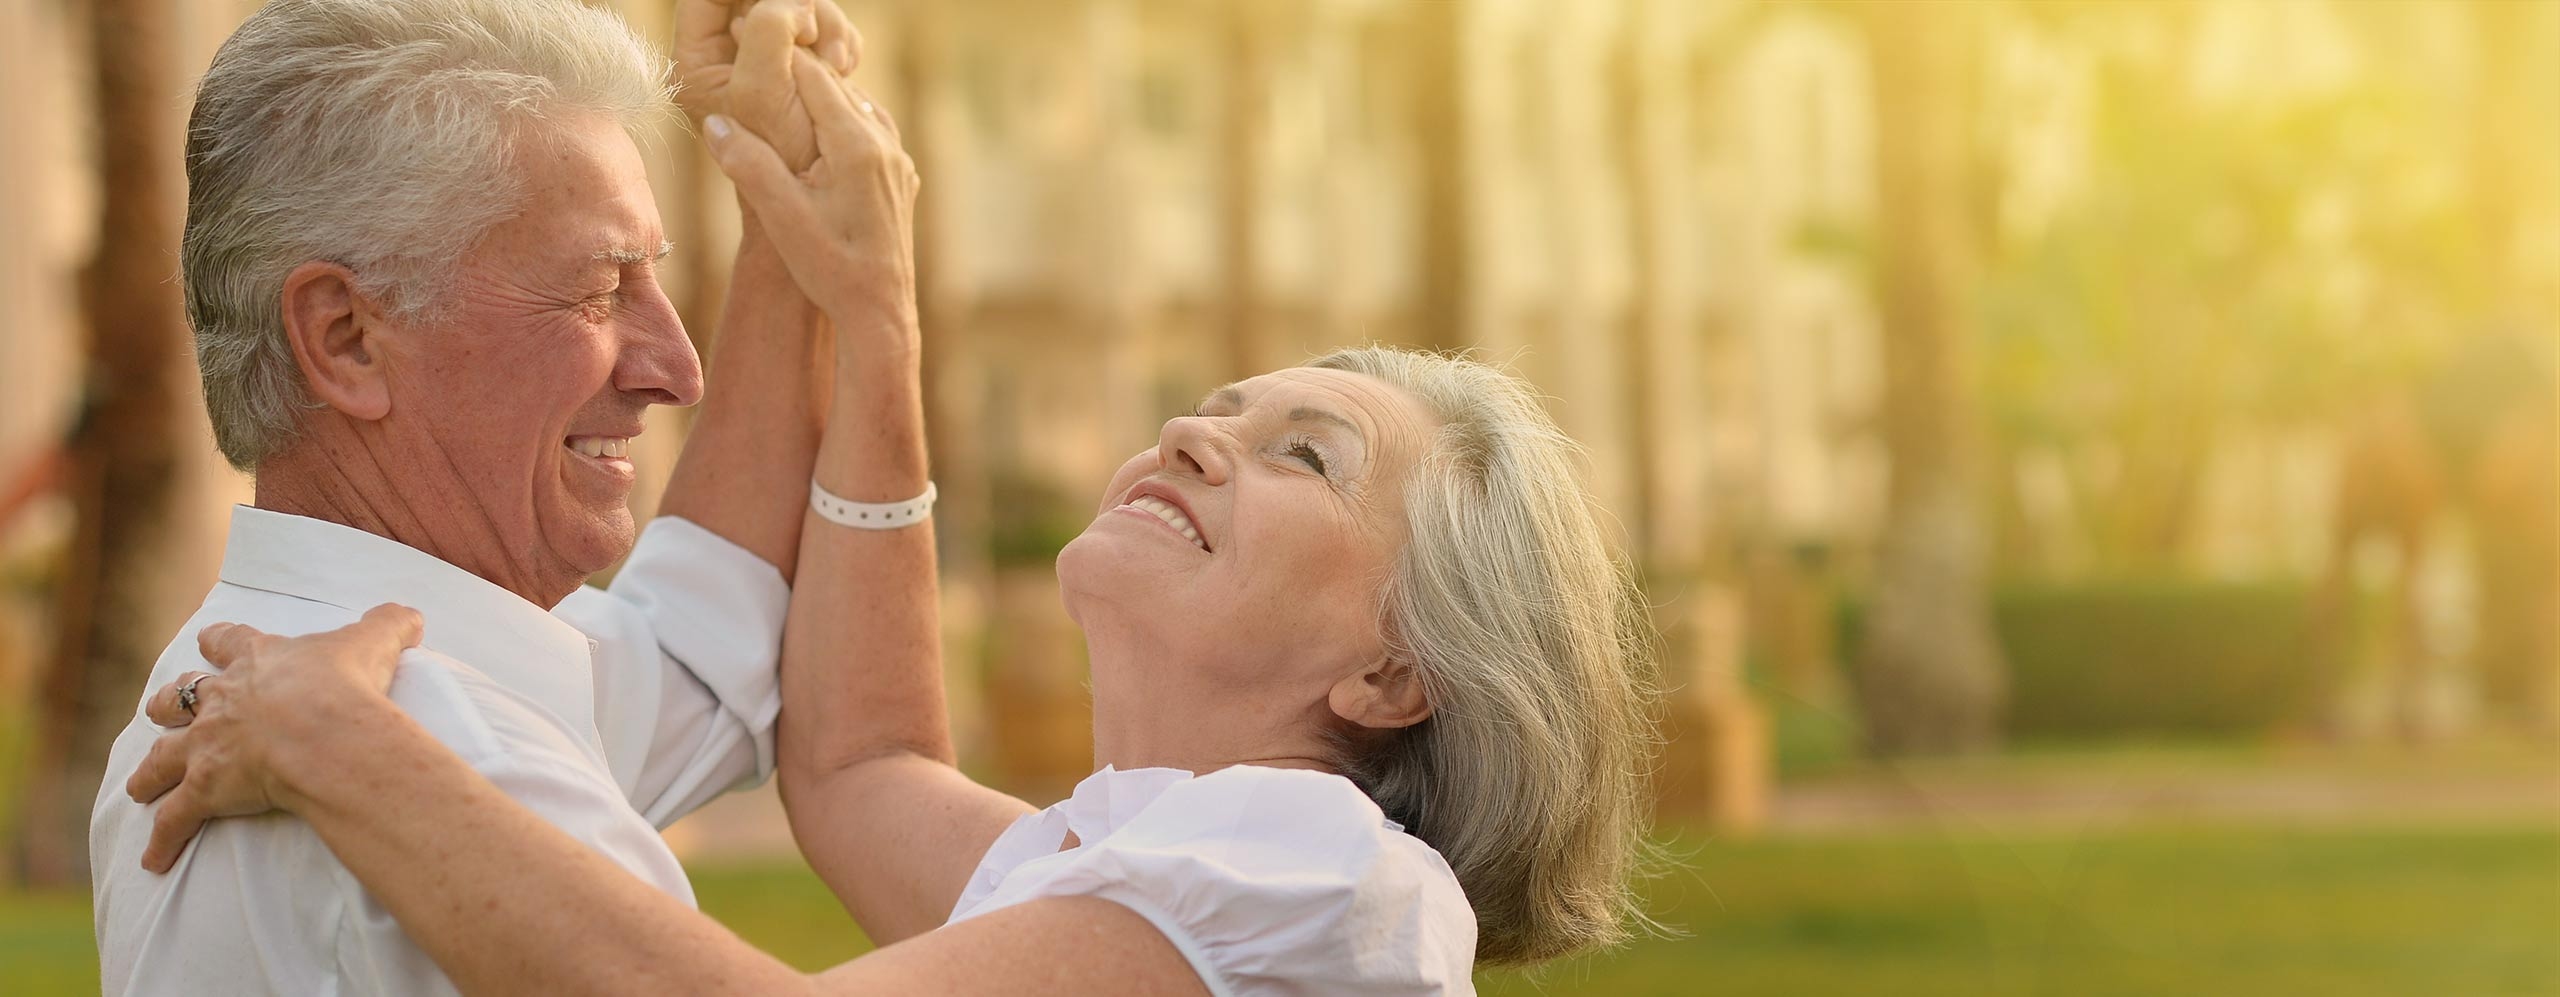 Dynamic Stem Cell Therapy can help you get back to living the life you love.